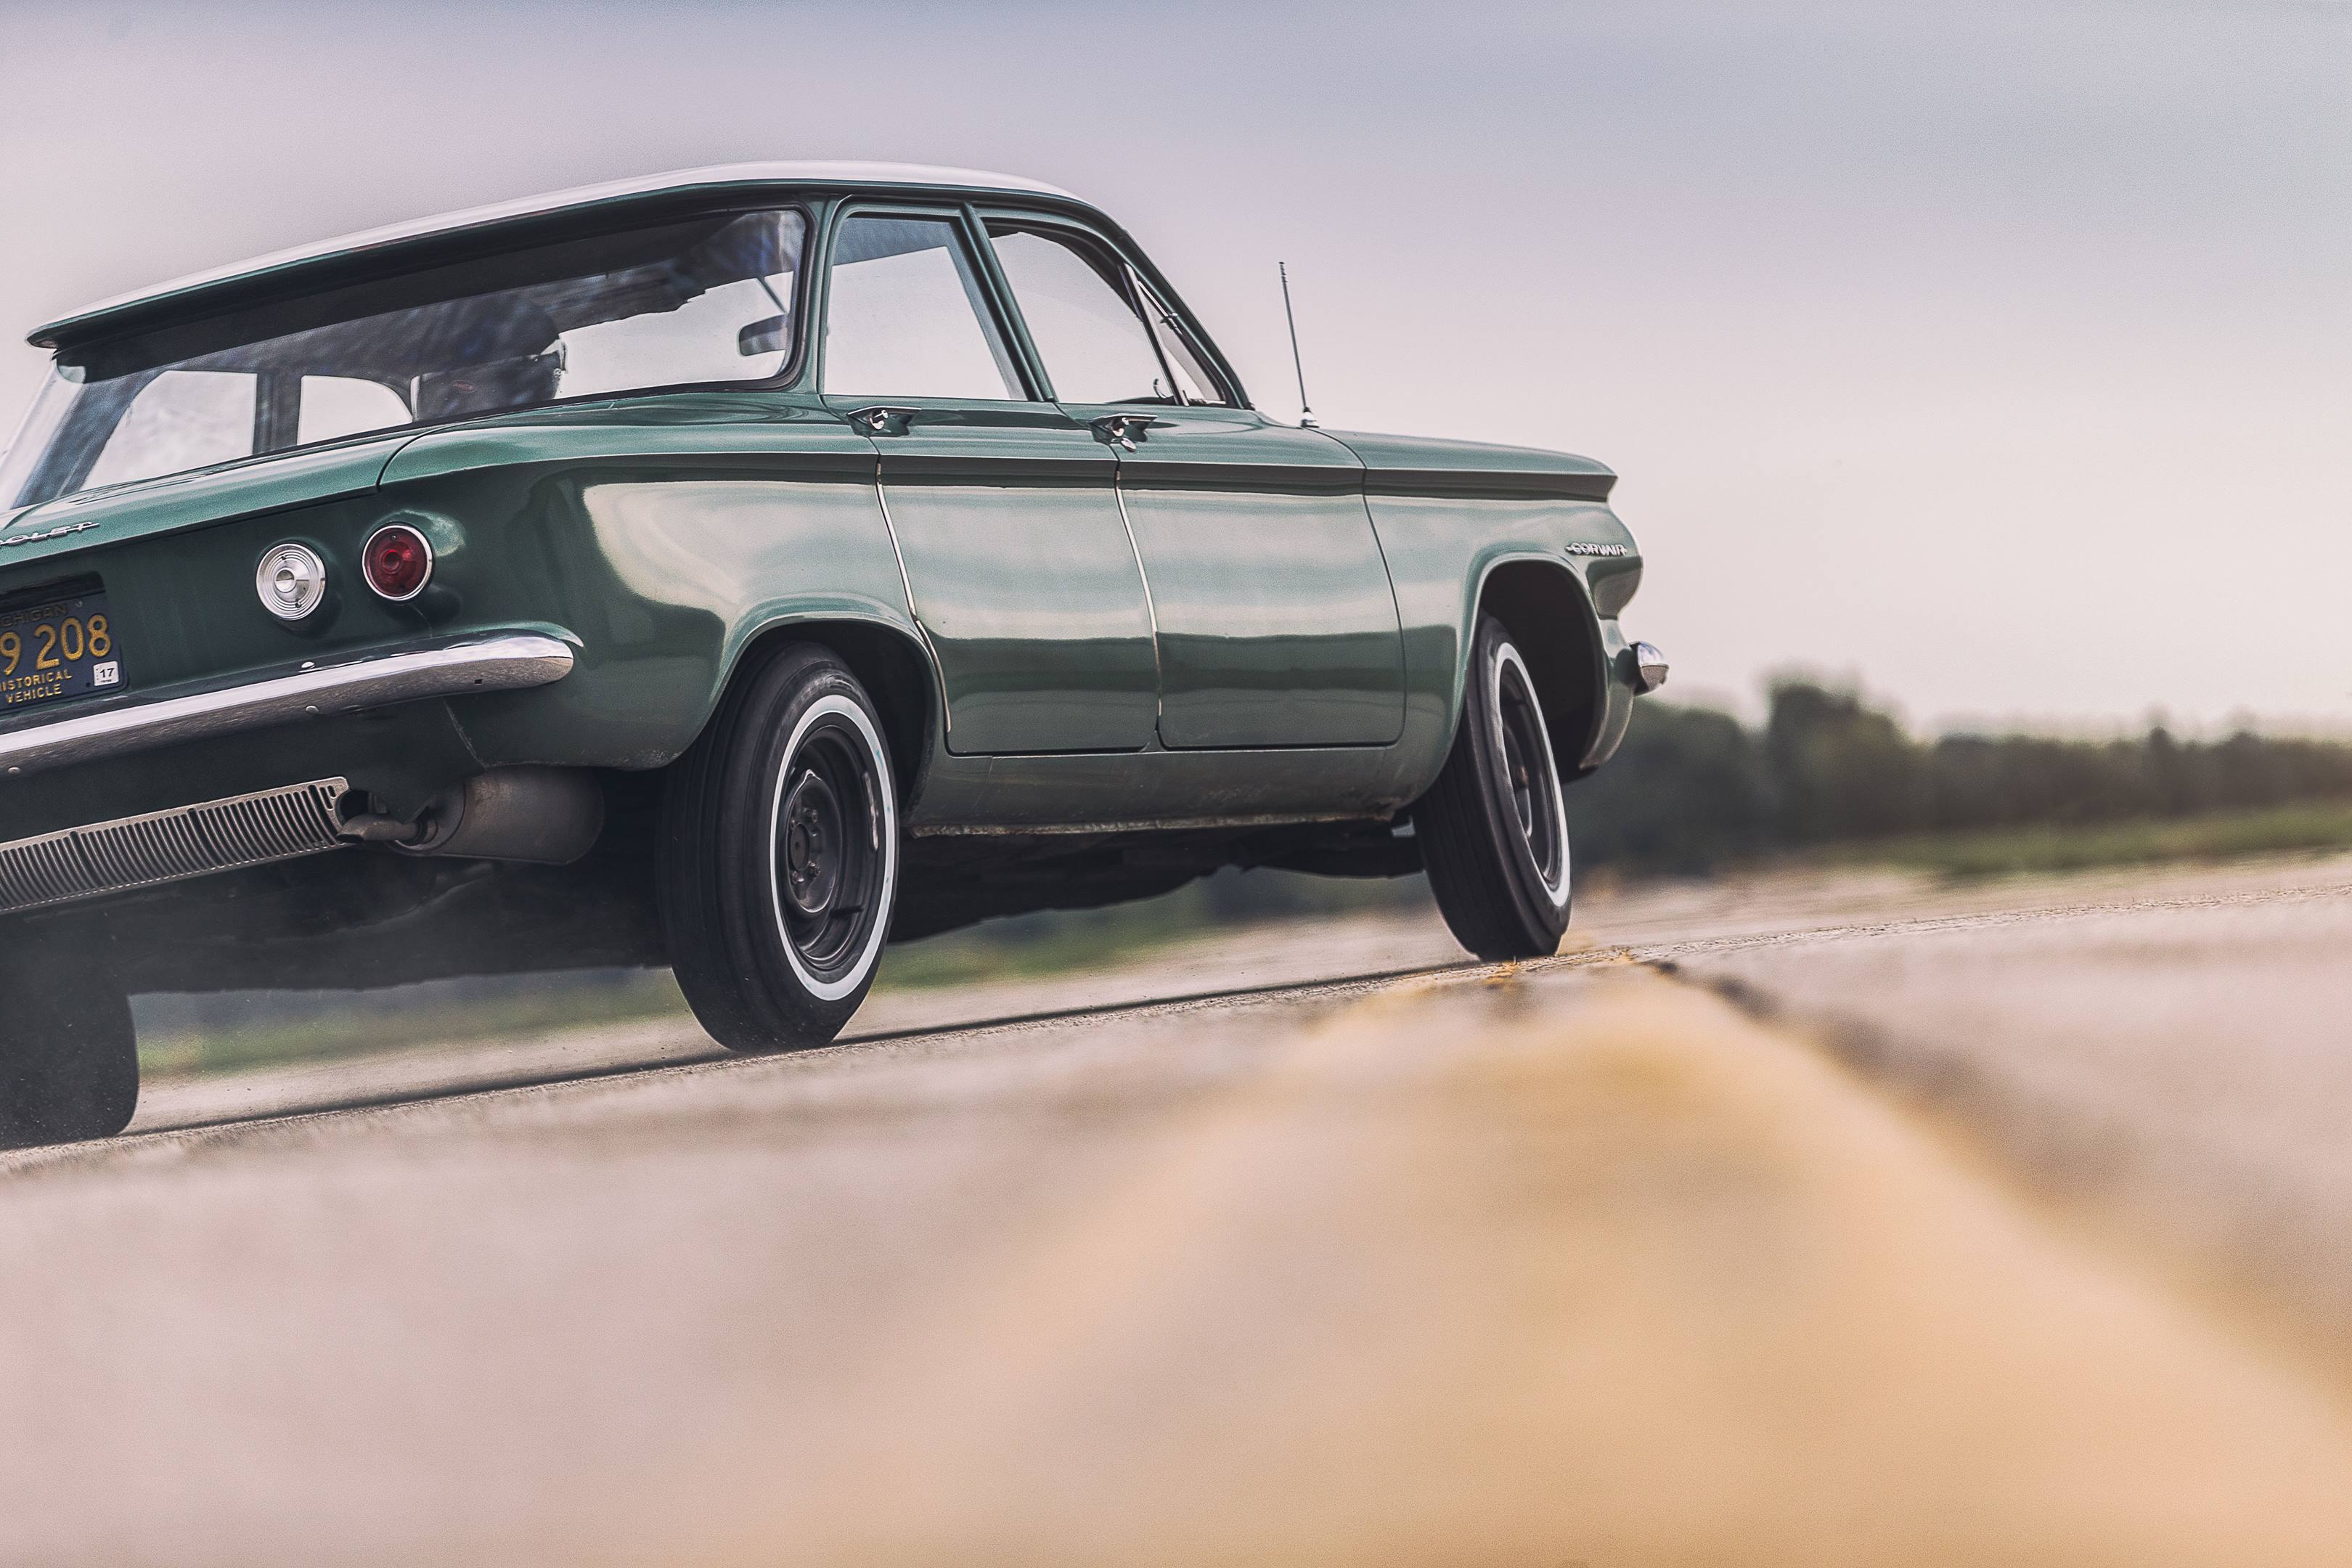 Will the Corvair Kill you?